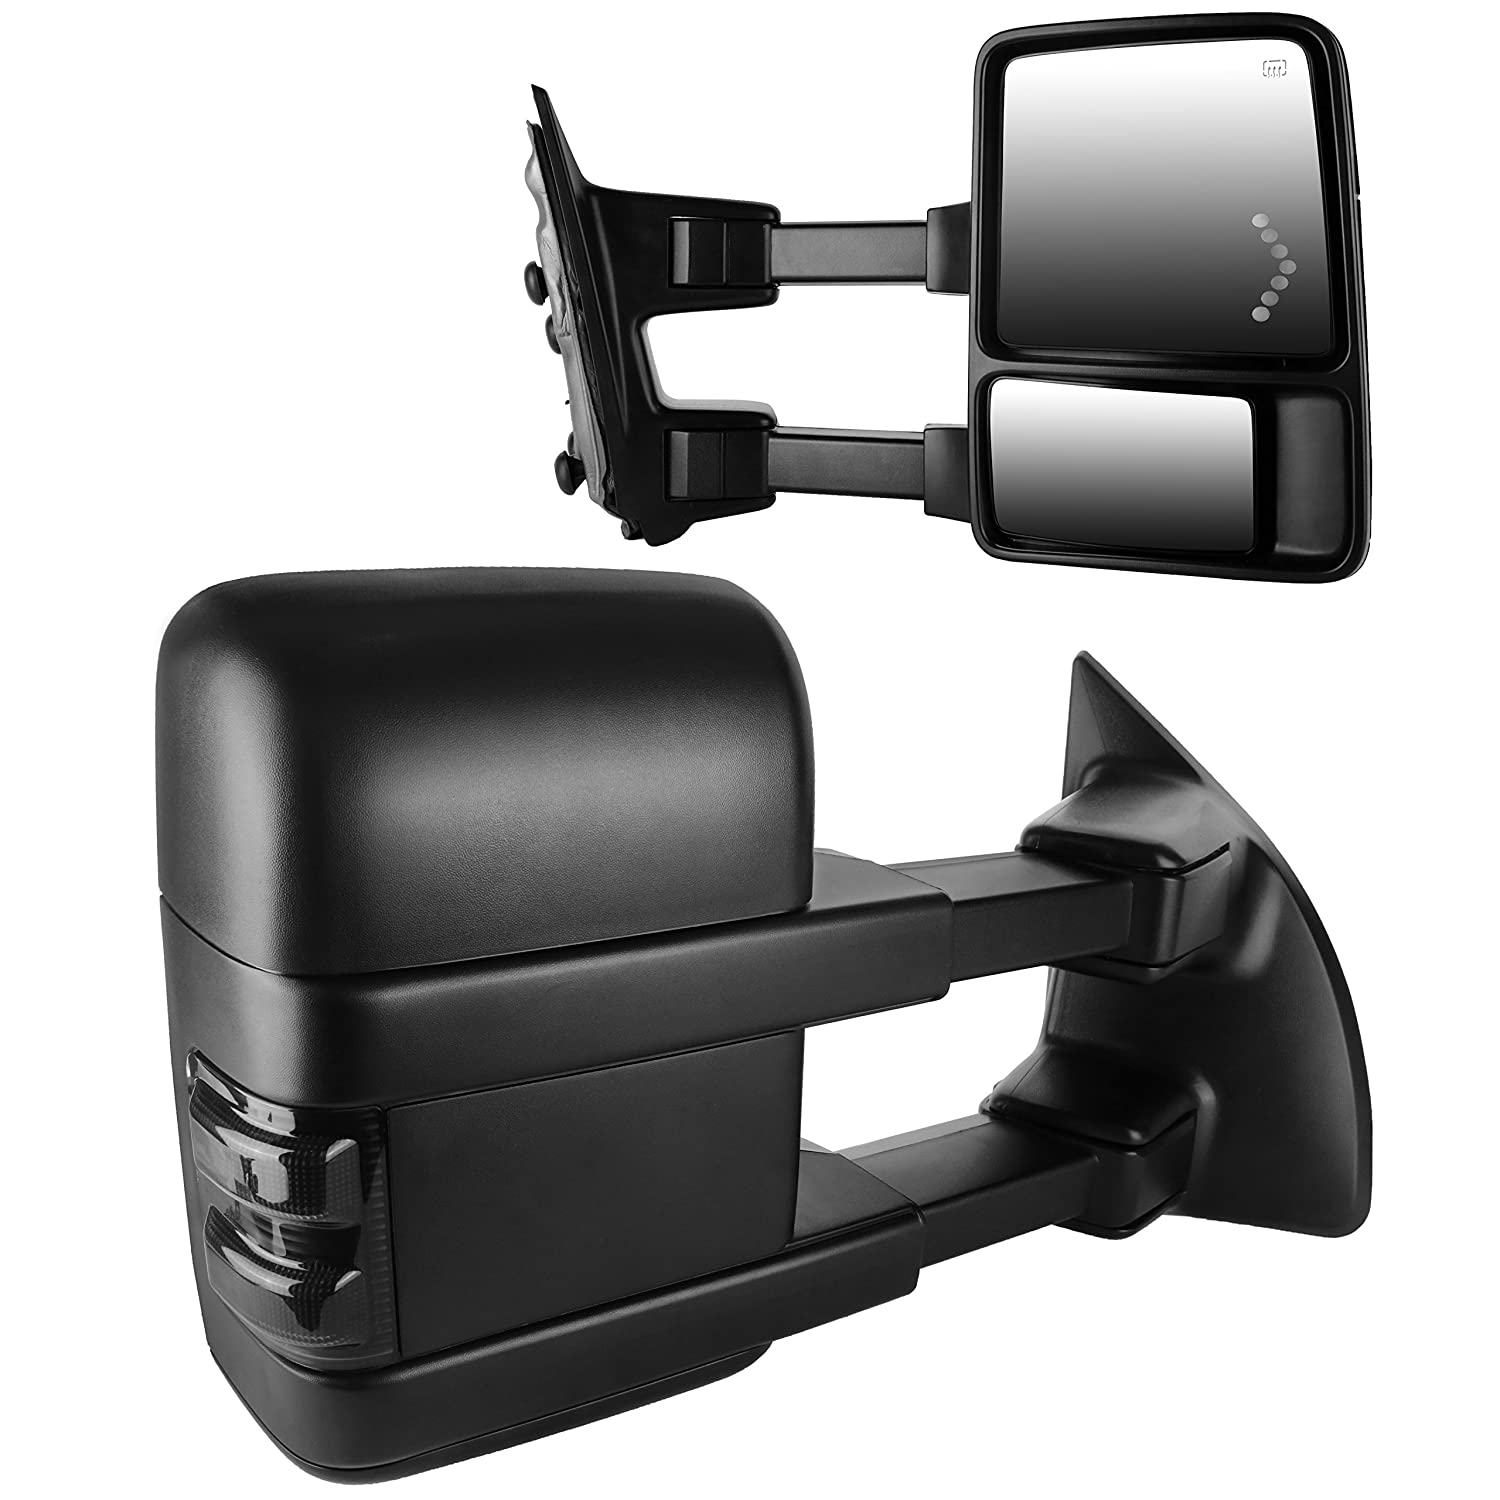 Dedc Pair 08 15 Ford F250 F350 F450 Towing Mirrors Power Mirror 2000 Wiring Heated With Red Led Signal Light Arrow Side View For Super Duty 2008 2009 2010